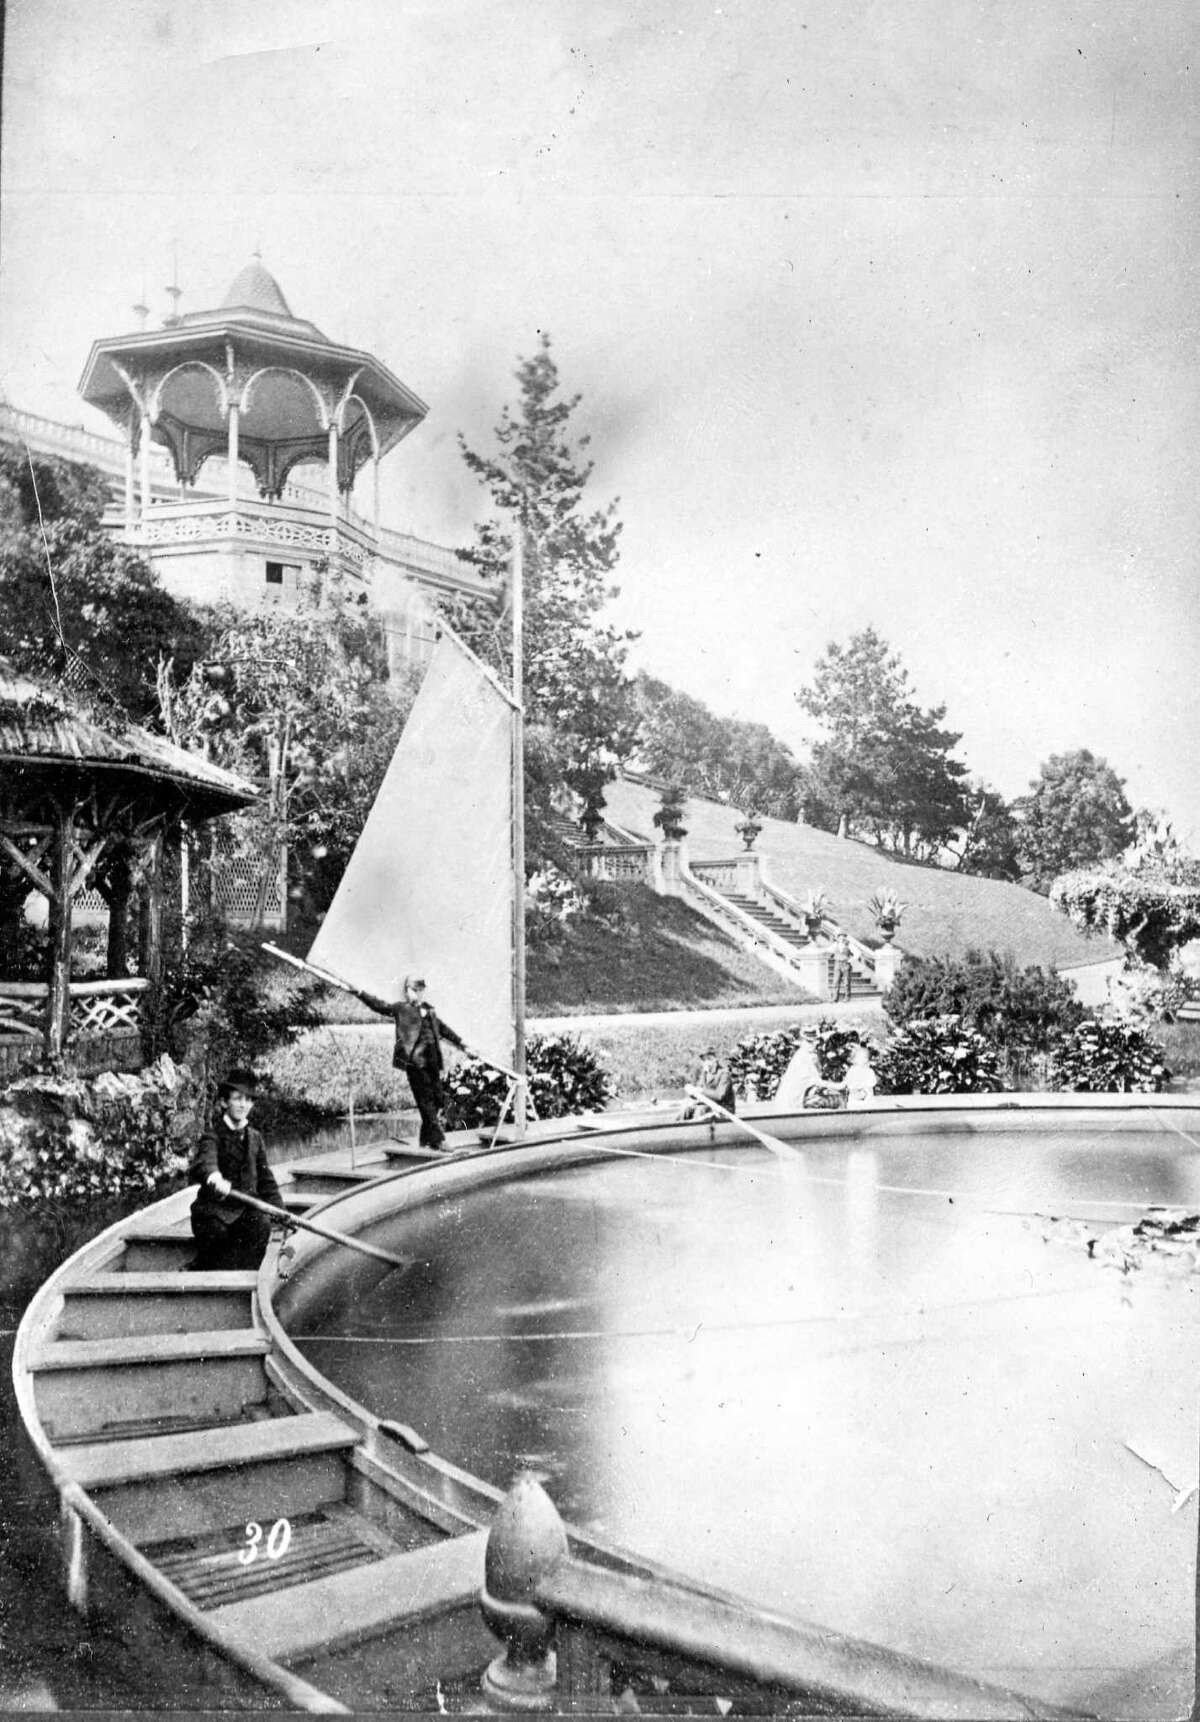 Late 1800s: A water ride at Woodward's Gardens, a San Francisco amusement park in the Mission District.